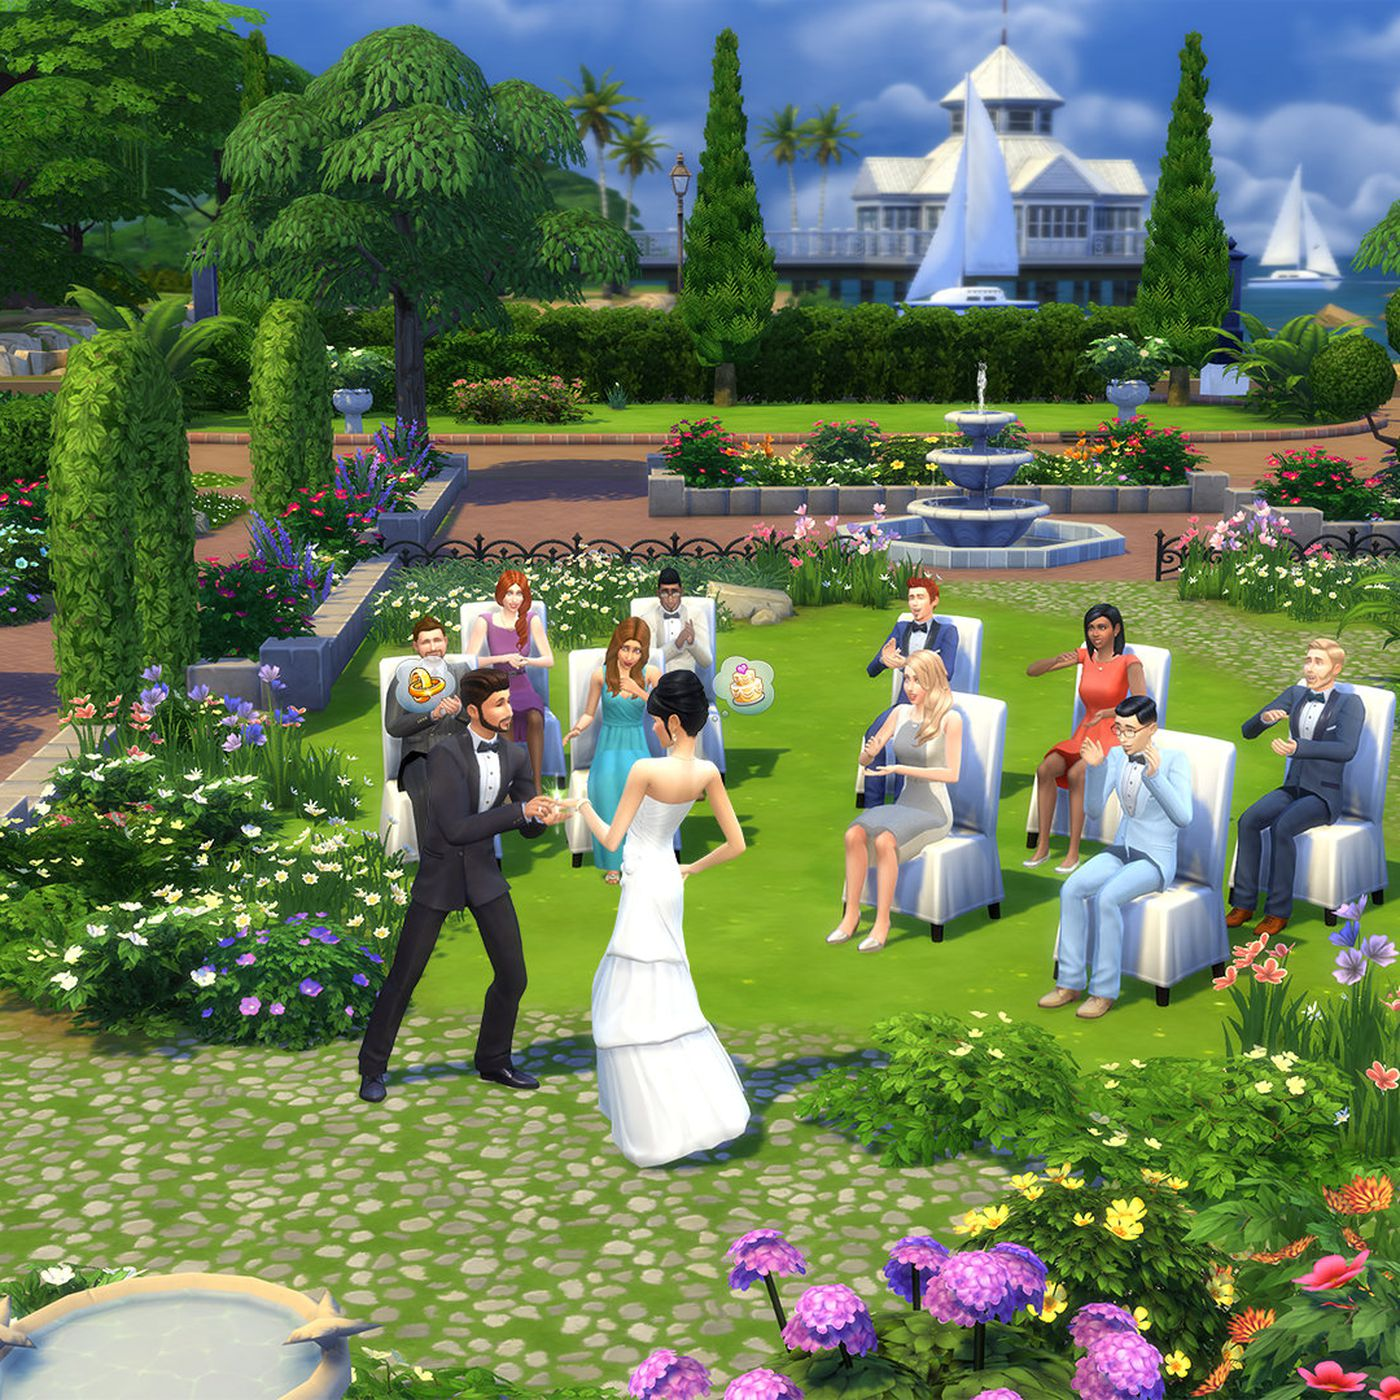 The Sims 4 console versions make it the couch game you didn